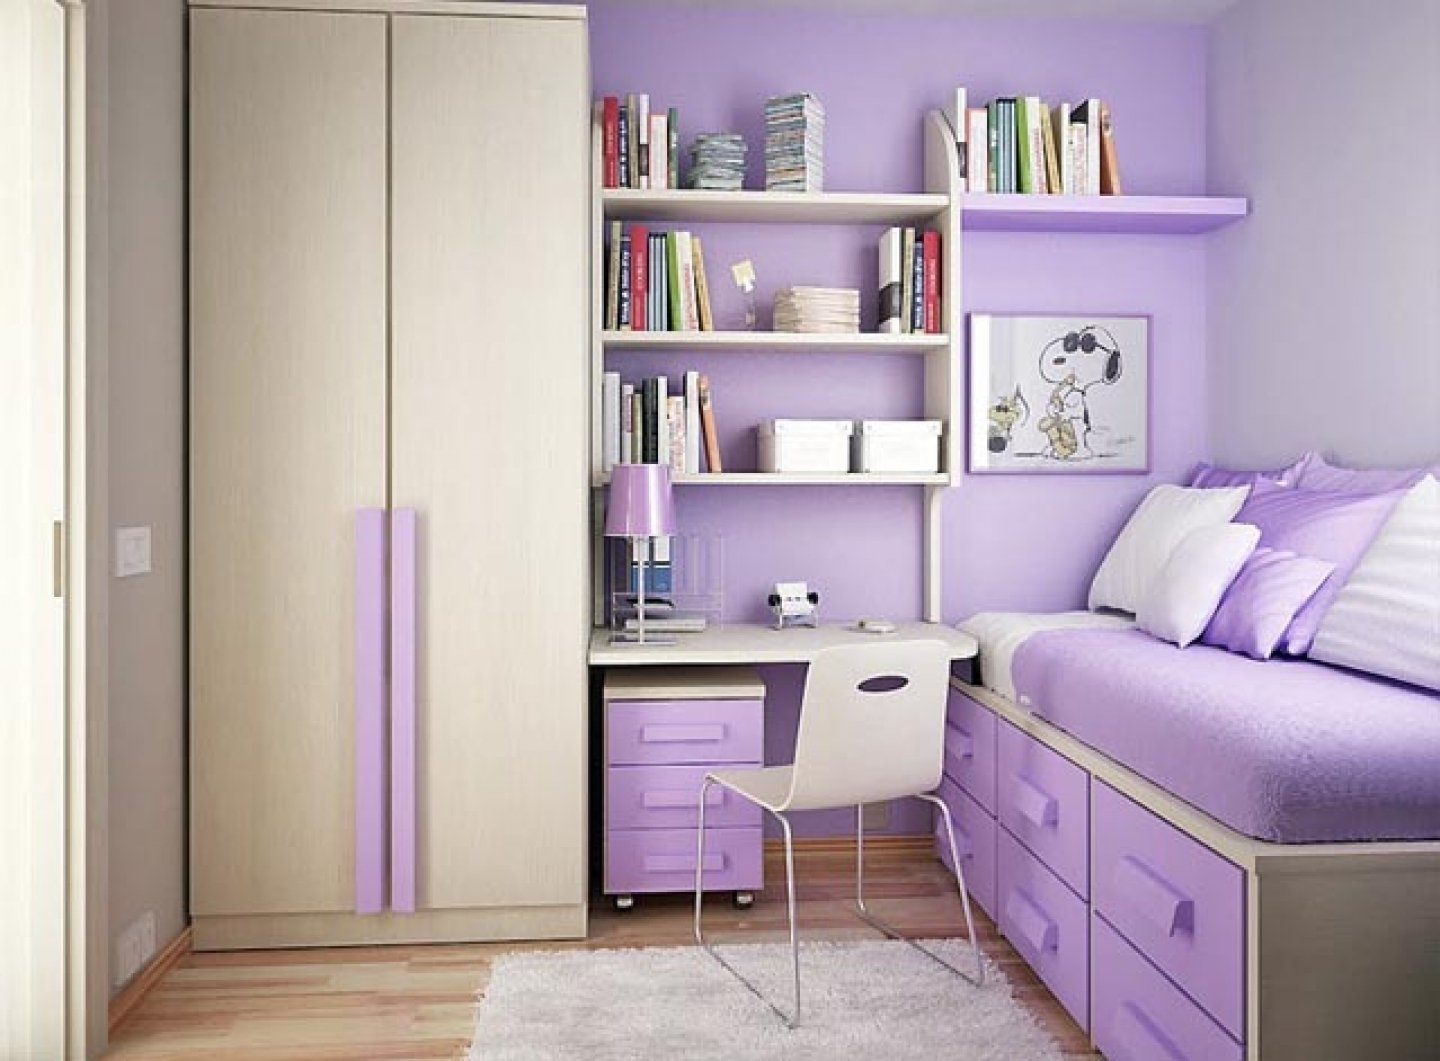 10 Lovely Teenage Girl Bedroom Ideas For Small Rooms awesome cute bedroom ideas for small rooms womenmisbehavin 2 2021